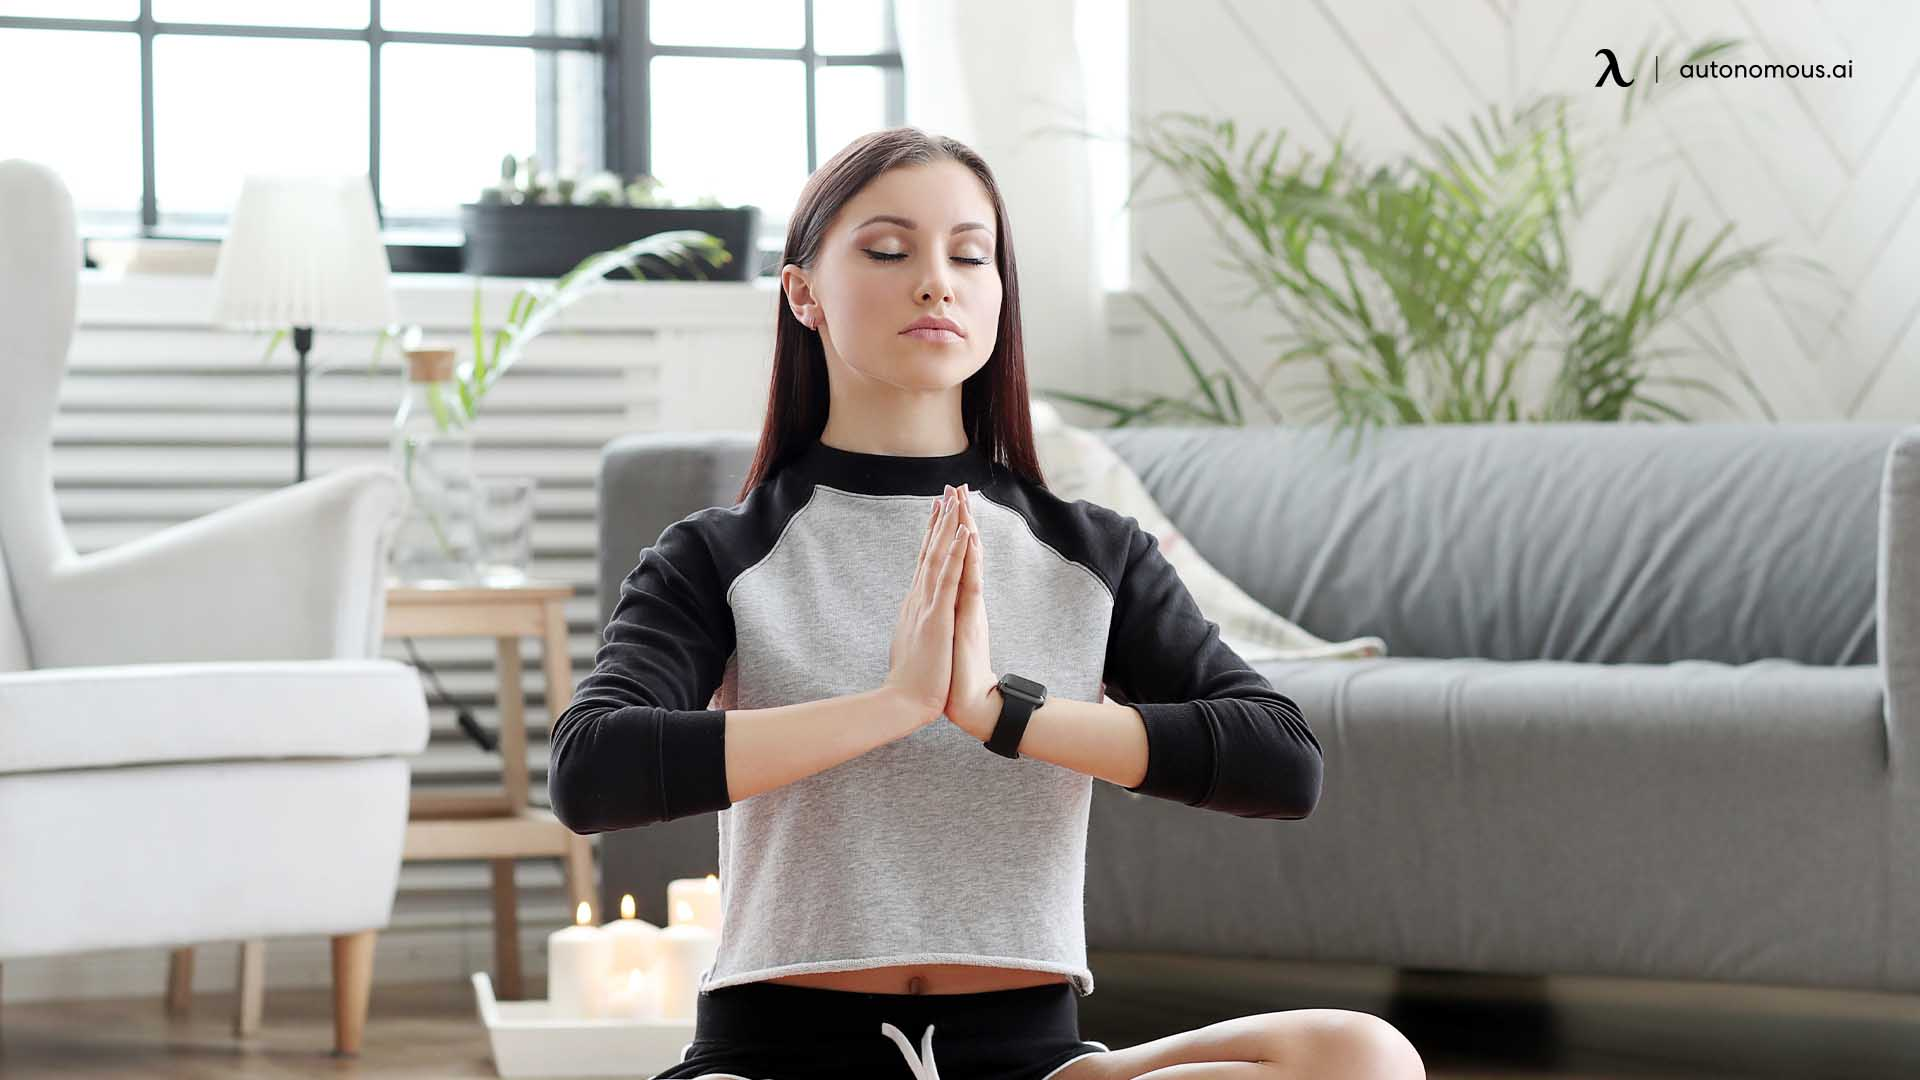 Praying Position Stretches